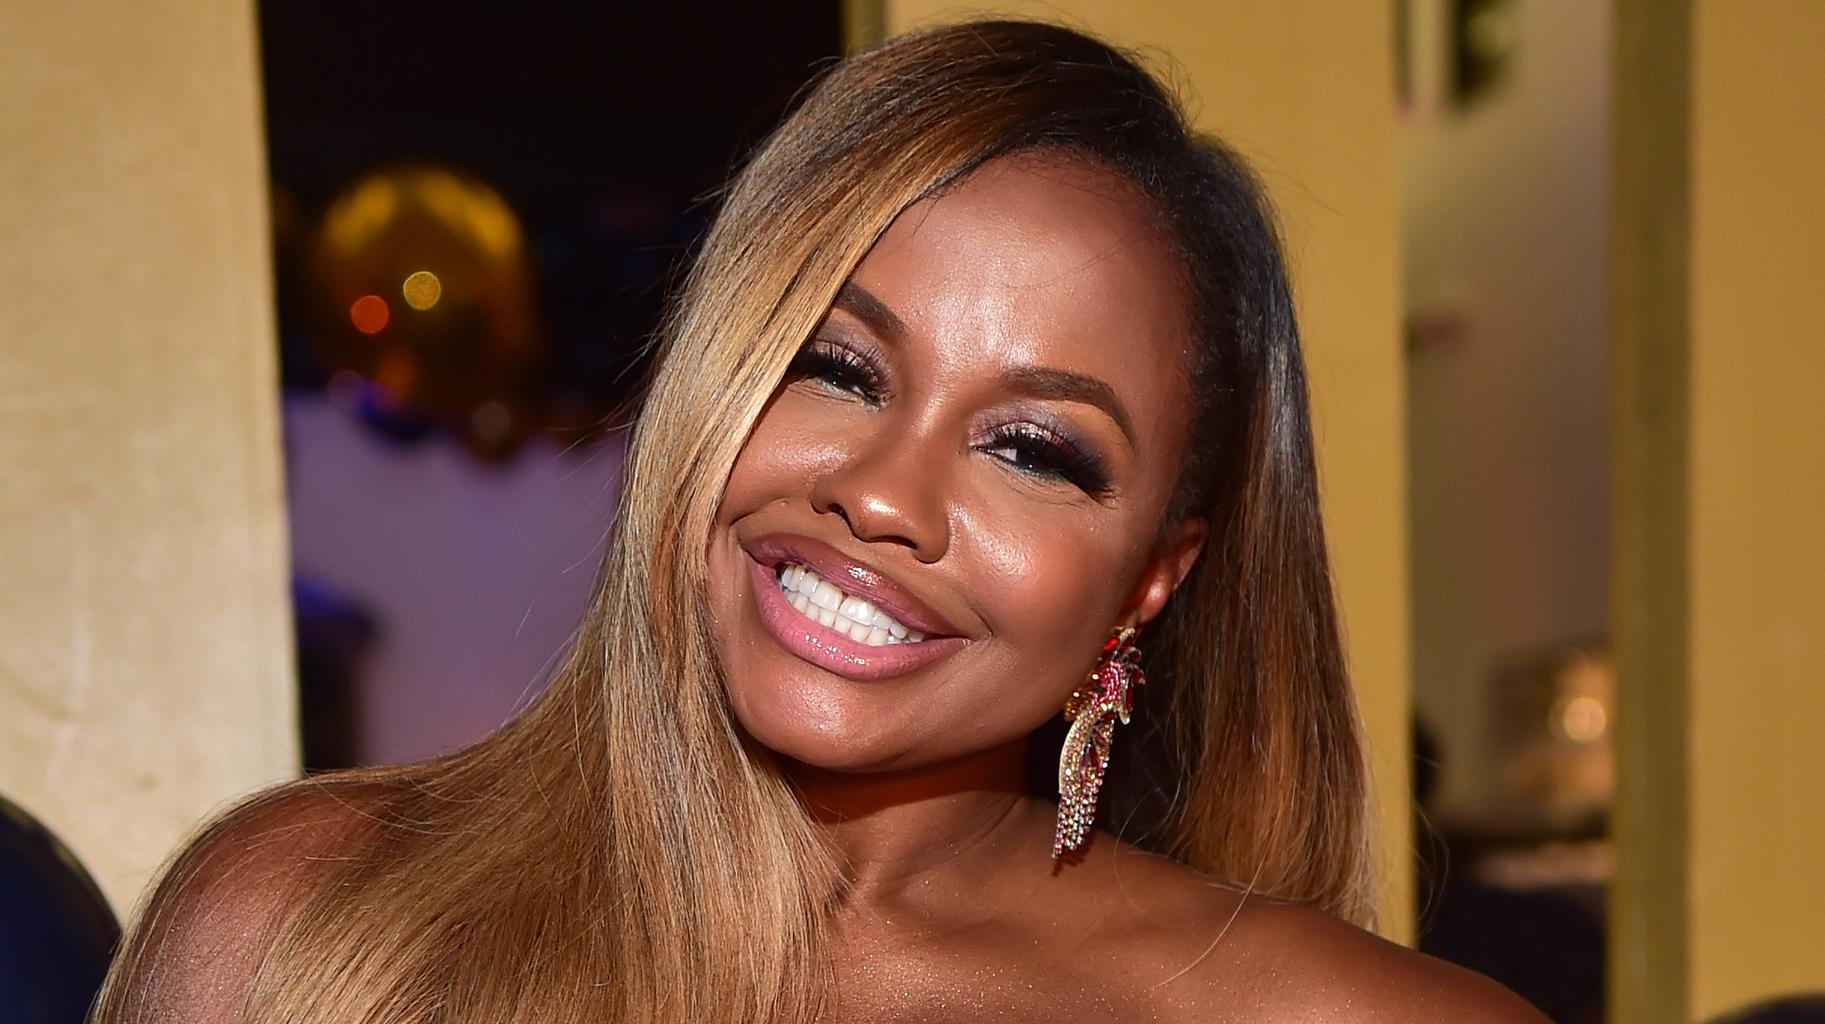 Phaedra Parks Shows Off Her Weight Loss Results - See Her Toned Abs